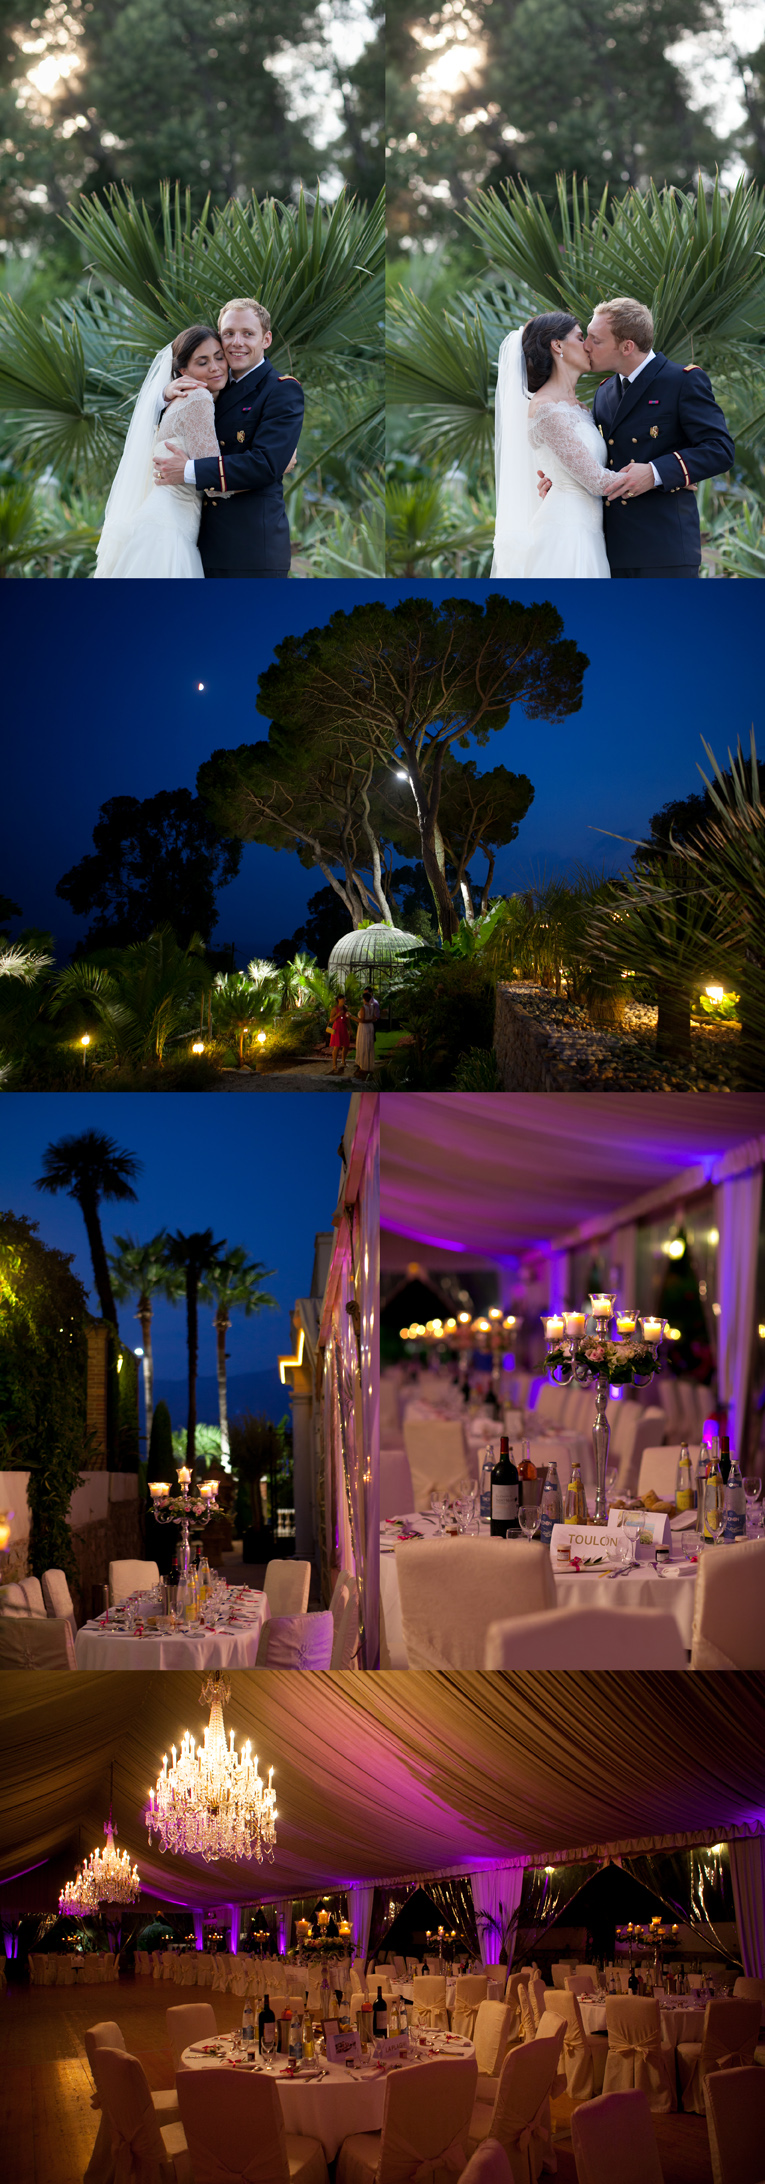 photo mariage var restaurant les pins penches toulon - Les Pins Penches Toulon Mariage